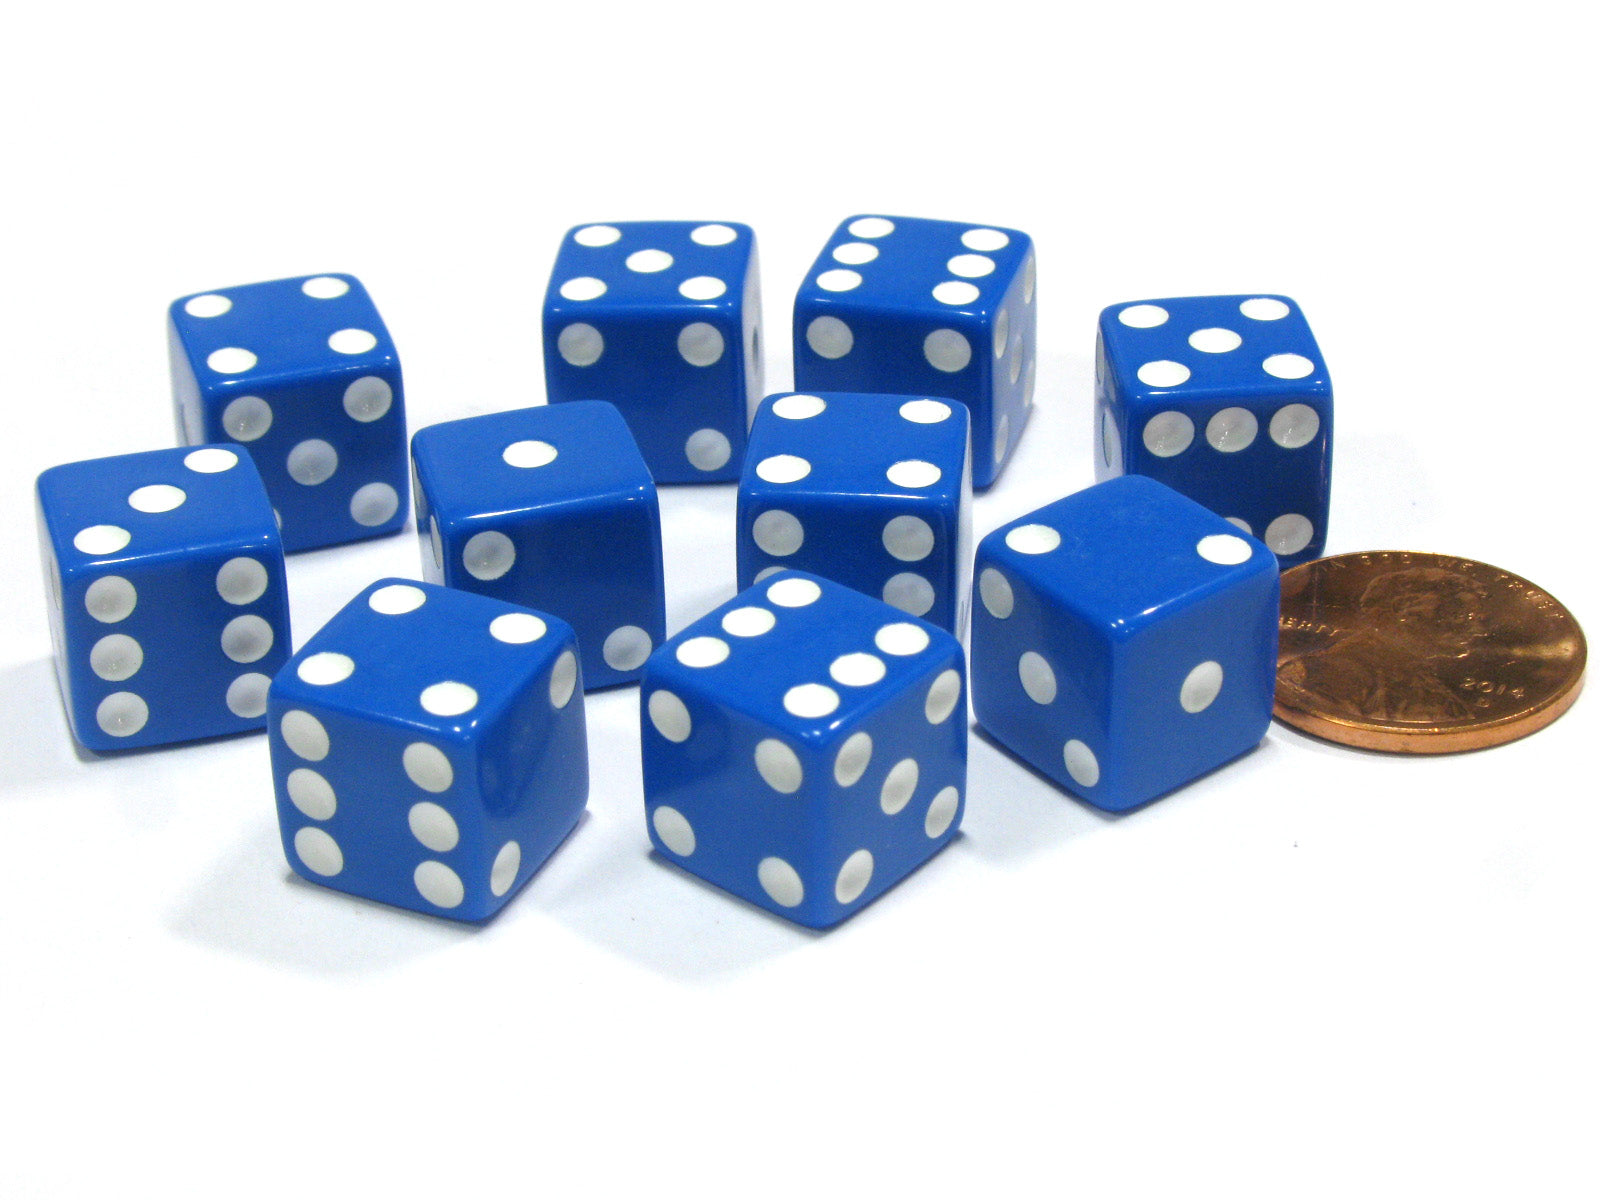 Set of 10 Six Sided D6 12mm Dice Die Squared RPG D&D Bunco Board Game Blue